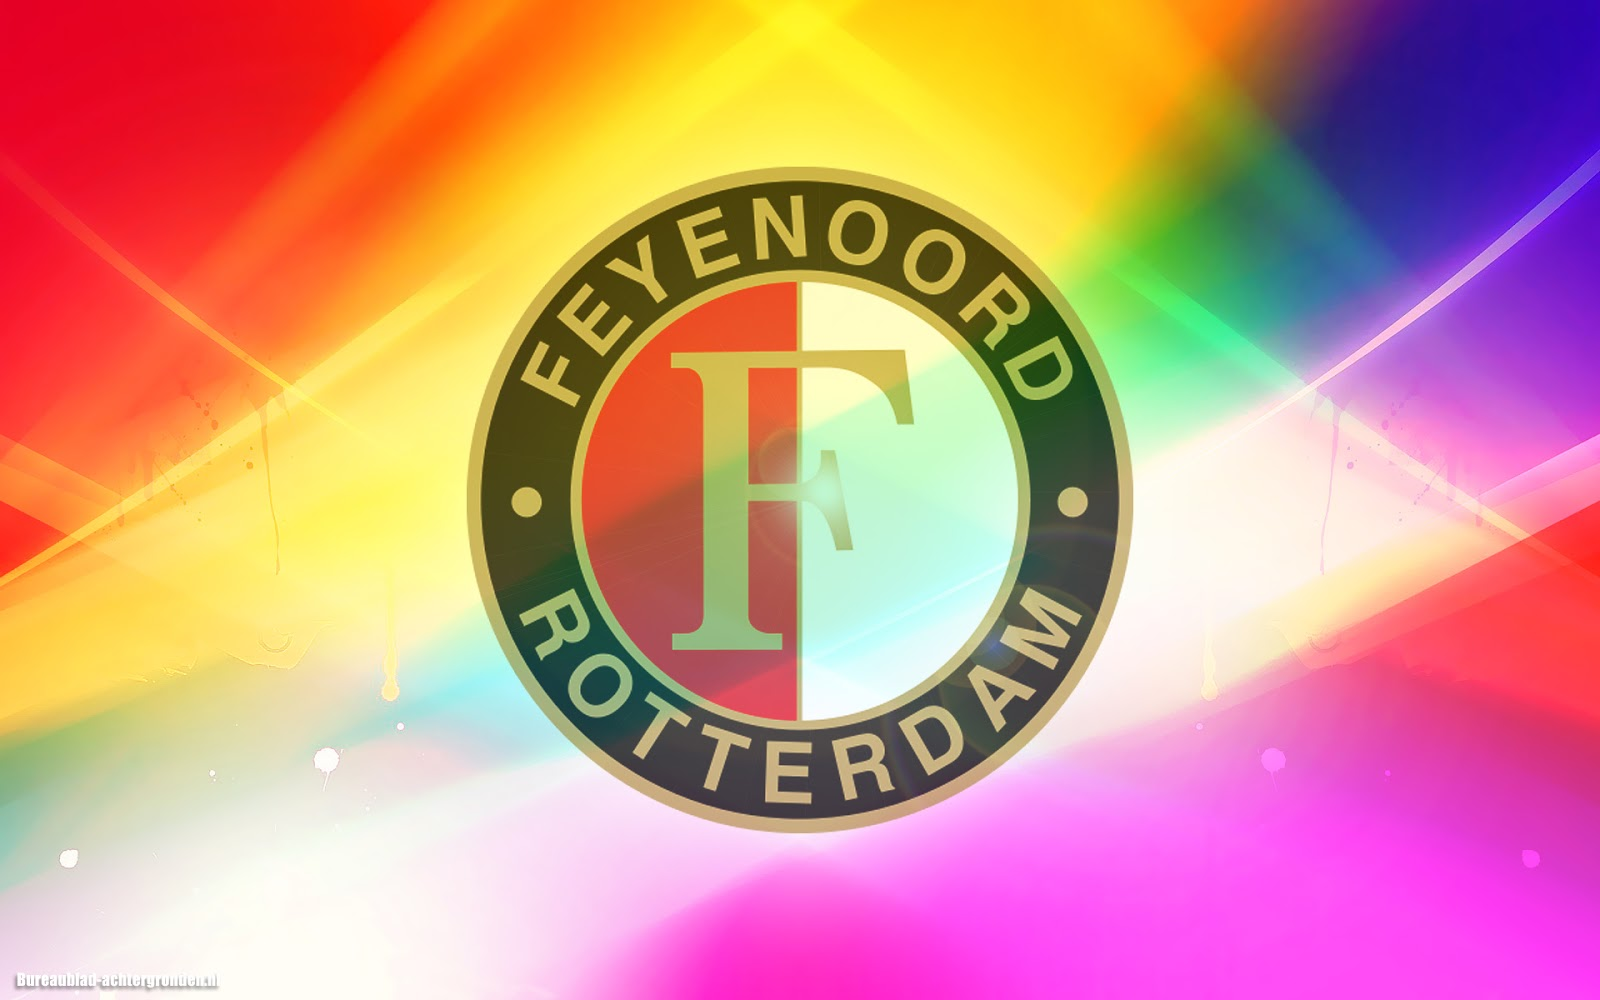 Google Wallpaper Hd Feyenoord Wallpapers Voor Pc Laptop Of Tablet Mooie